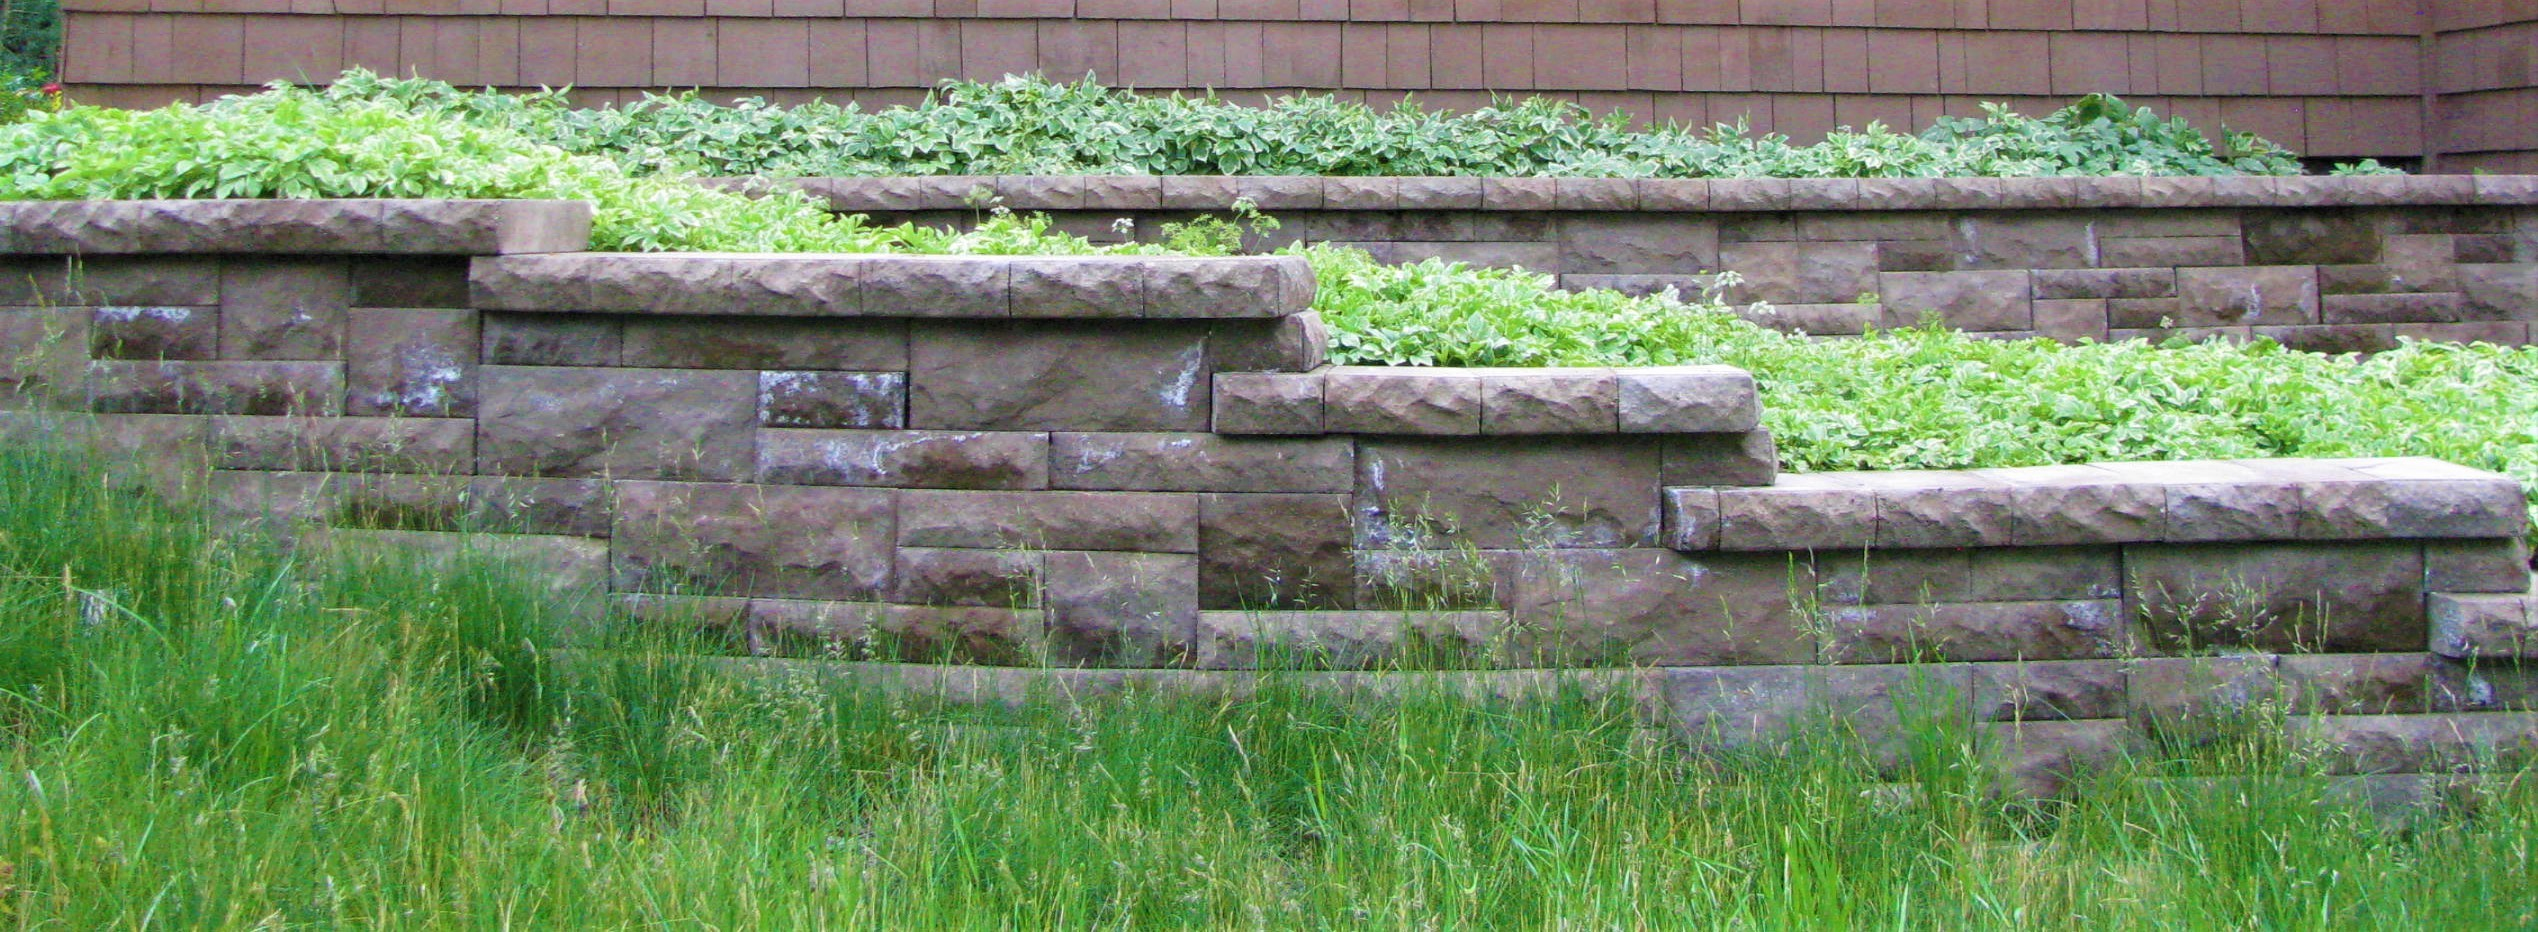 retaining wall by landscaping company in silverthorne colorado